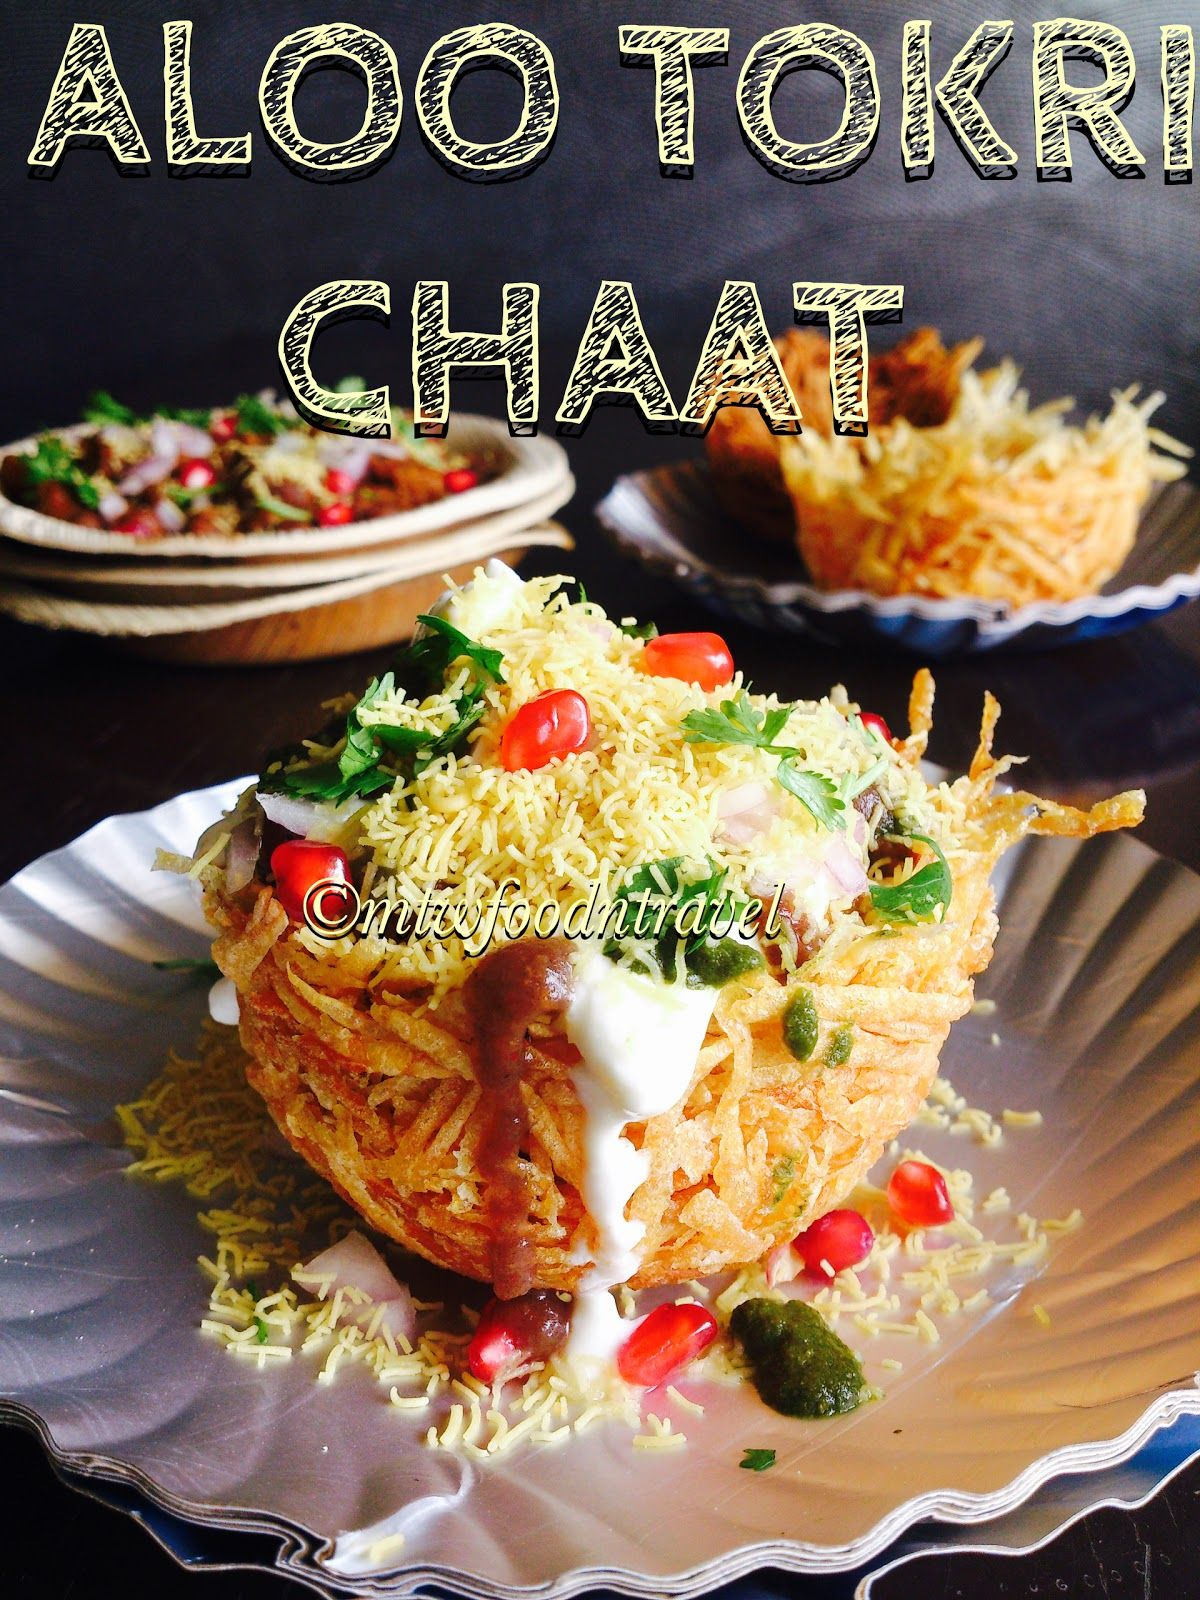 My tryst with food and travel aloo tokri chaat hit by a mammoth my tryst with food and travel aloo tokri chaat hit by a mammoth bomb indian recipesindian forumfinder Image collections